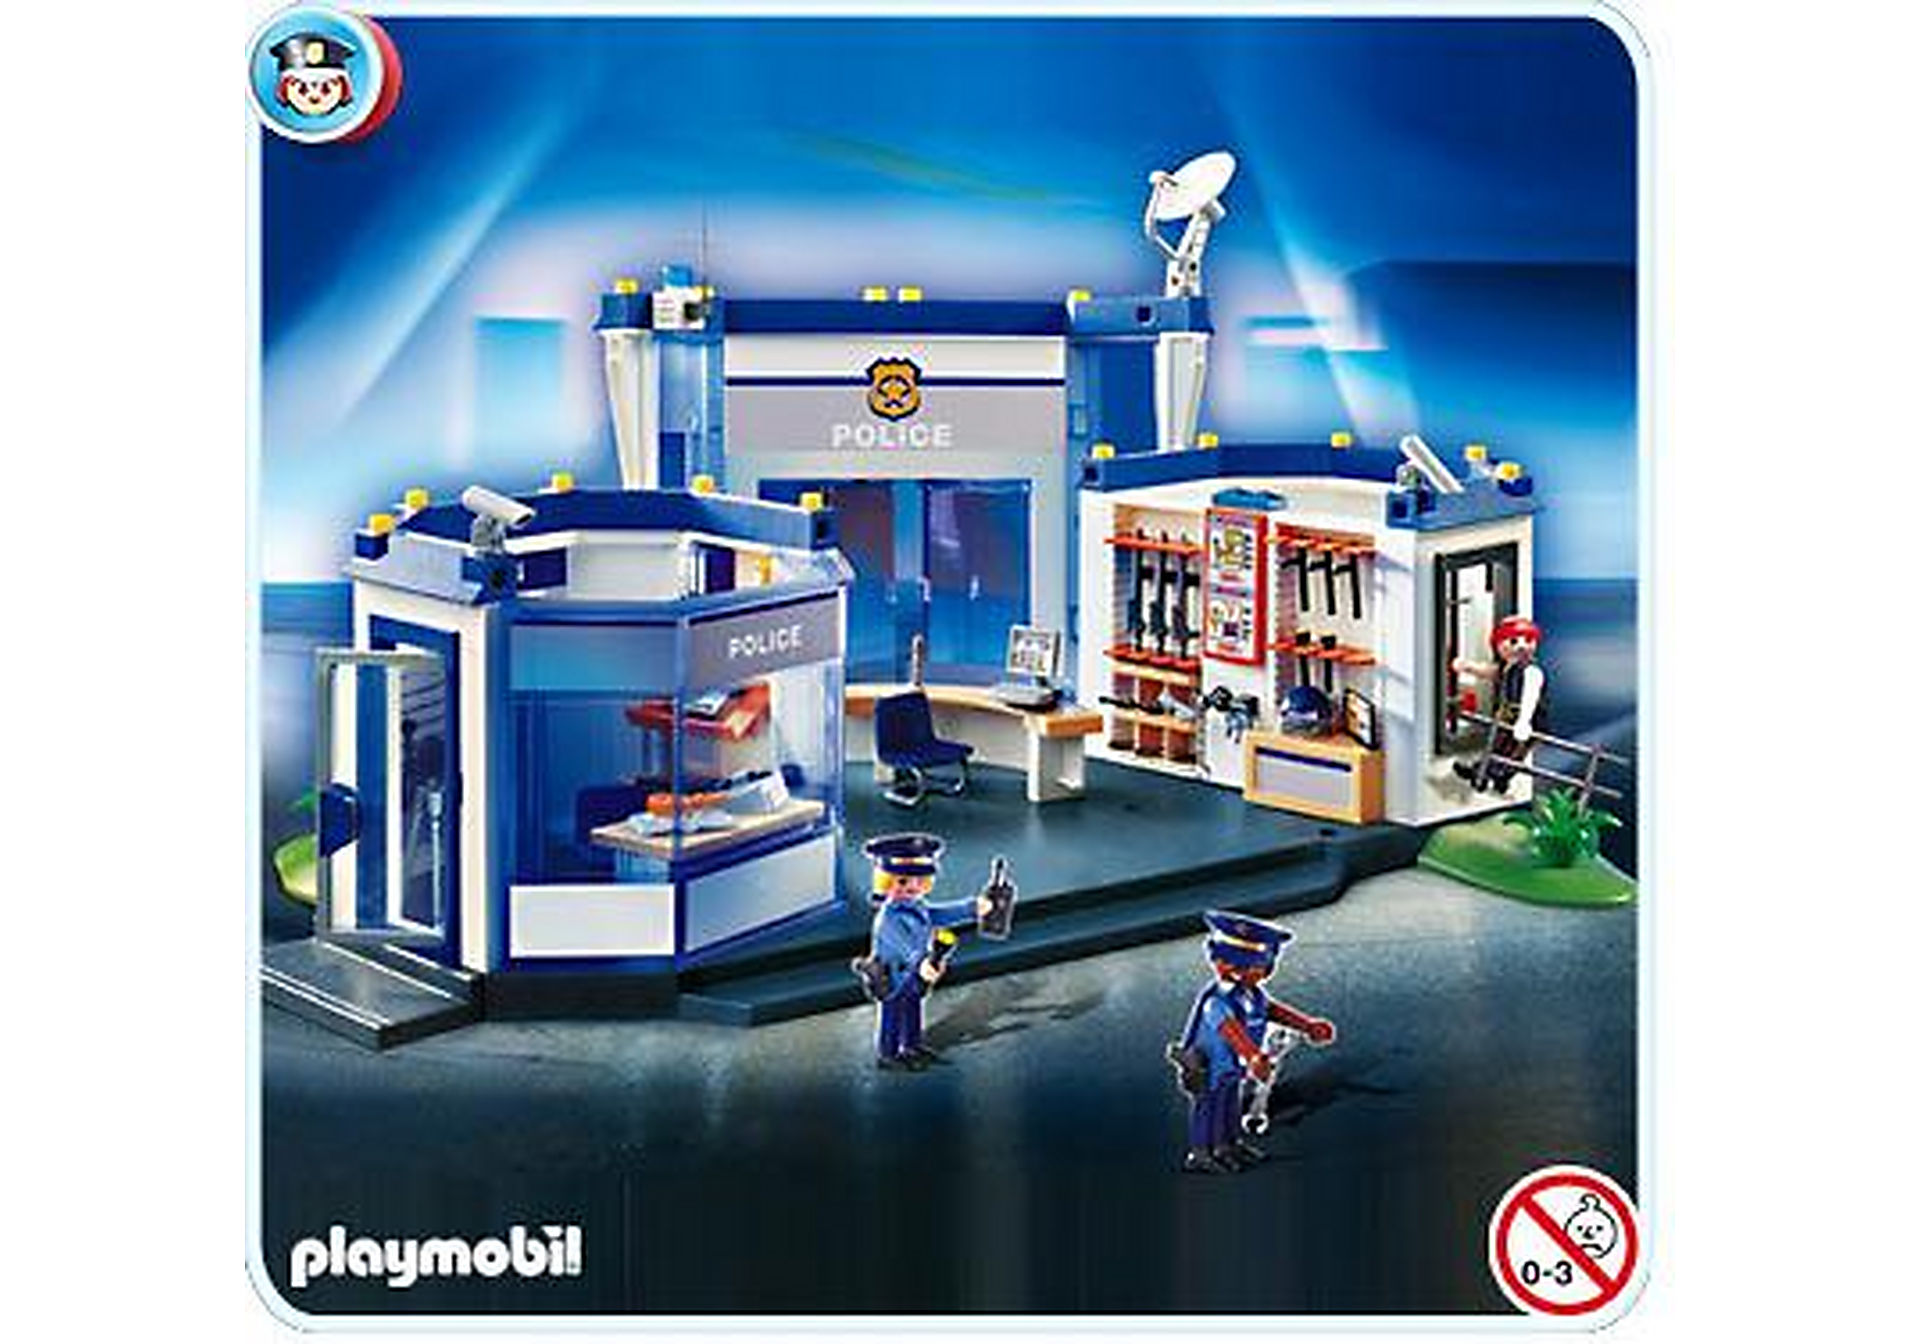 http://media.playmobil.com/i/playmobil/4264-A_product_detail/Commissariat de police